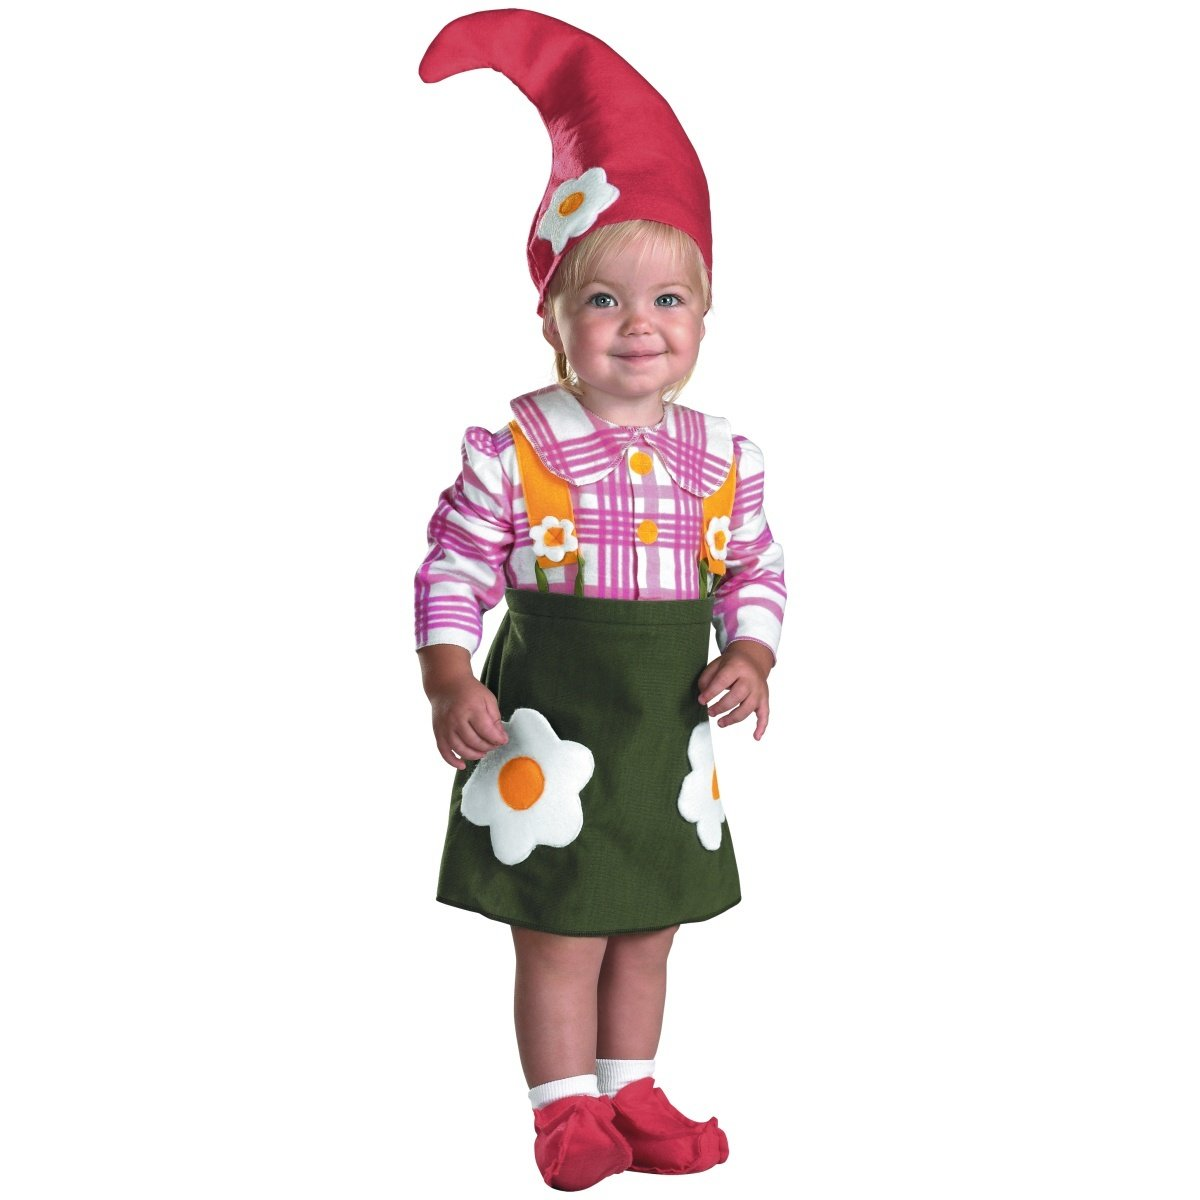 sc 1 st  Amazon.com & Amazon.com: Flower Garden Gnome Costume - Toddler Small: Toys u0026 Games